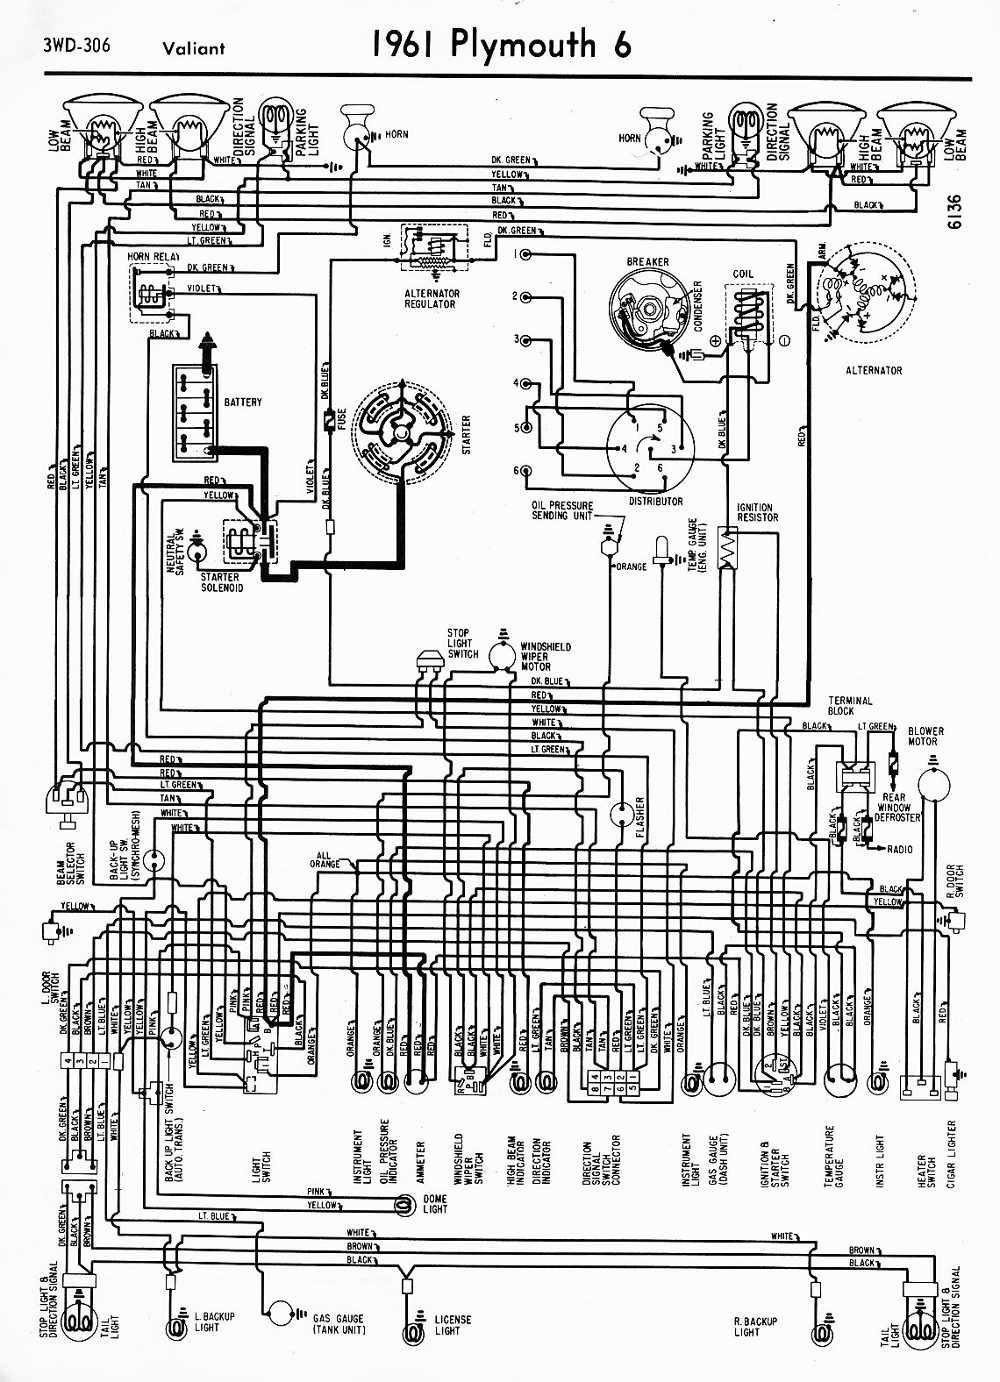 wiring diagrams of 1961 plymouth 6 valiant?t\\\=1508746019 1955 plymouth wiring diagram 1955 wiring diagrams instruction 69 roadrunner ignition switch wiring diagram at bakdesigns.co